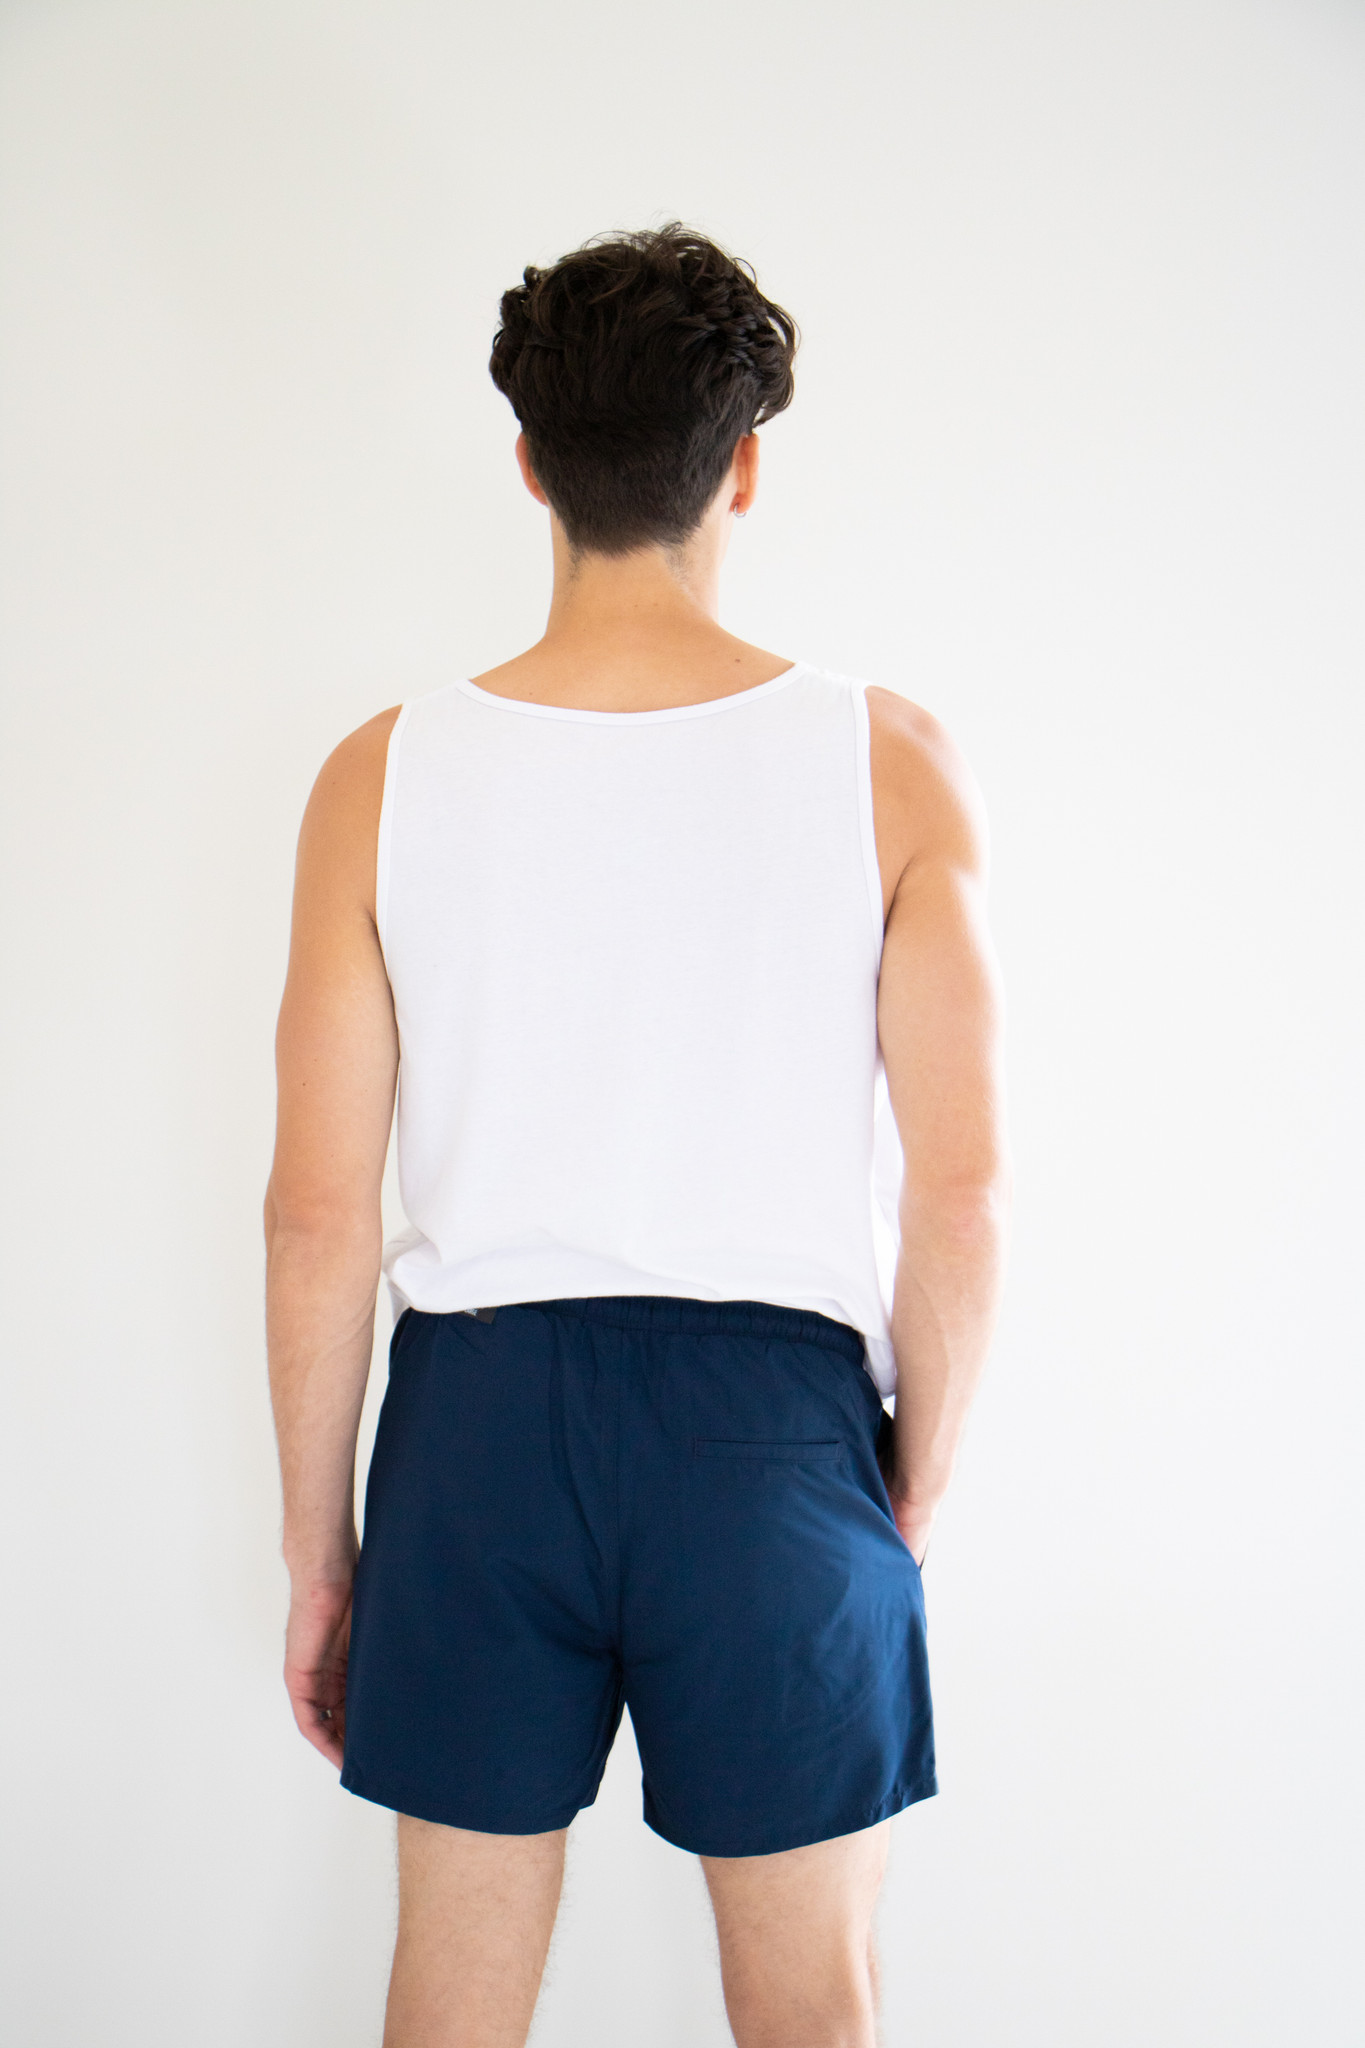 Onsted Solid Colour Swimshorts in Navy